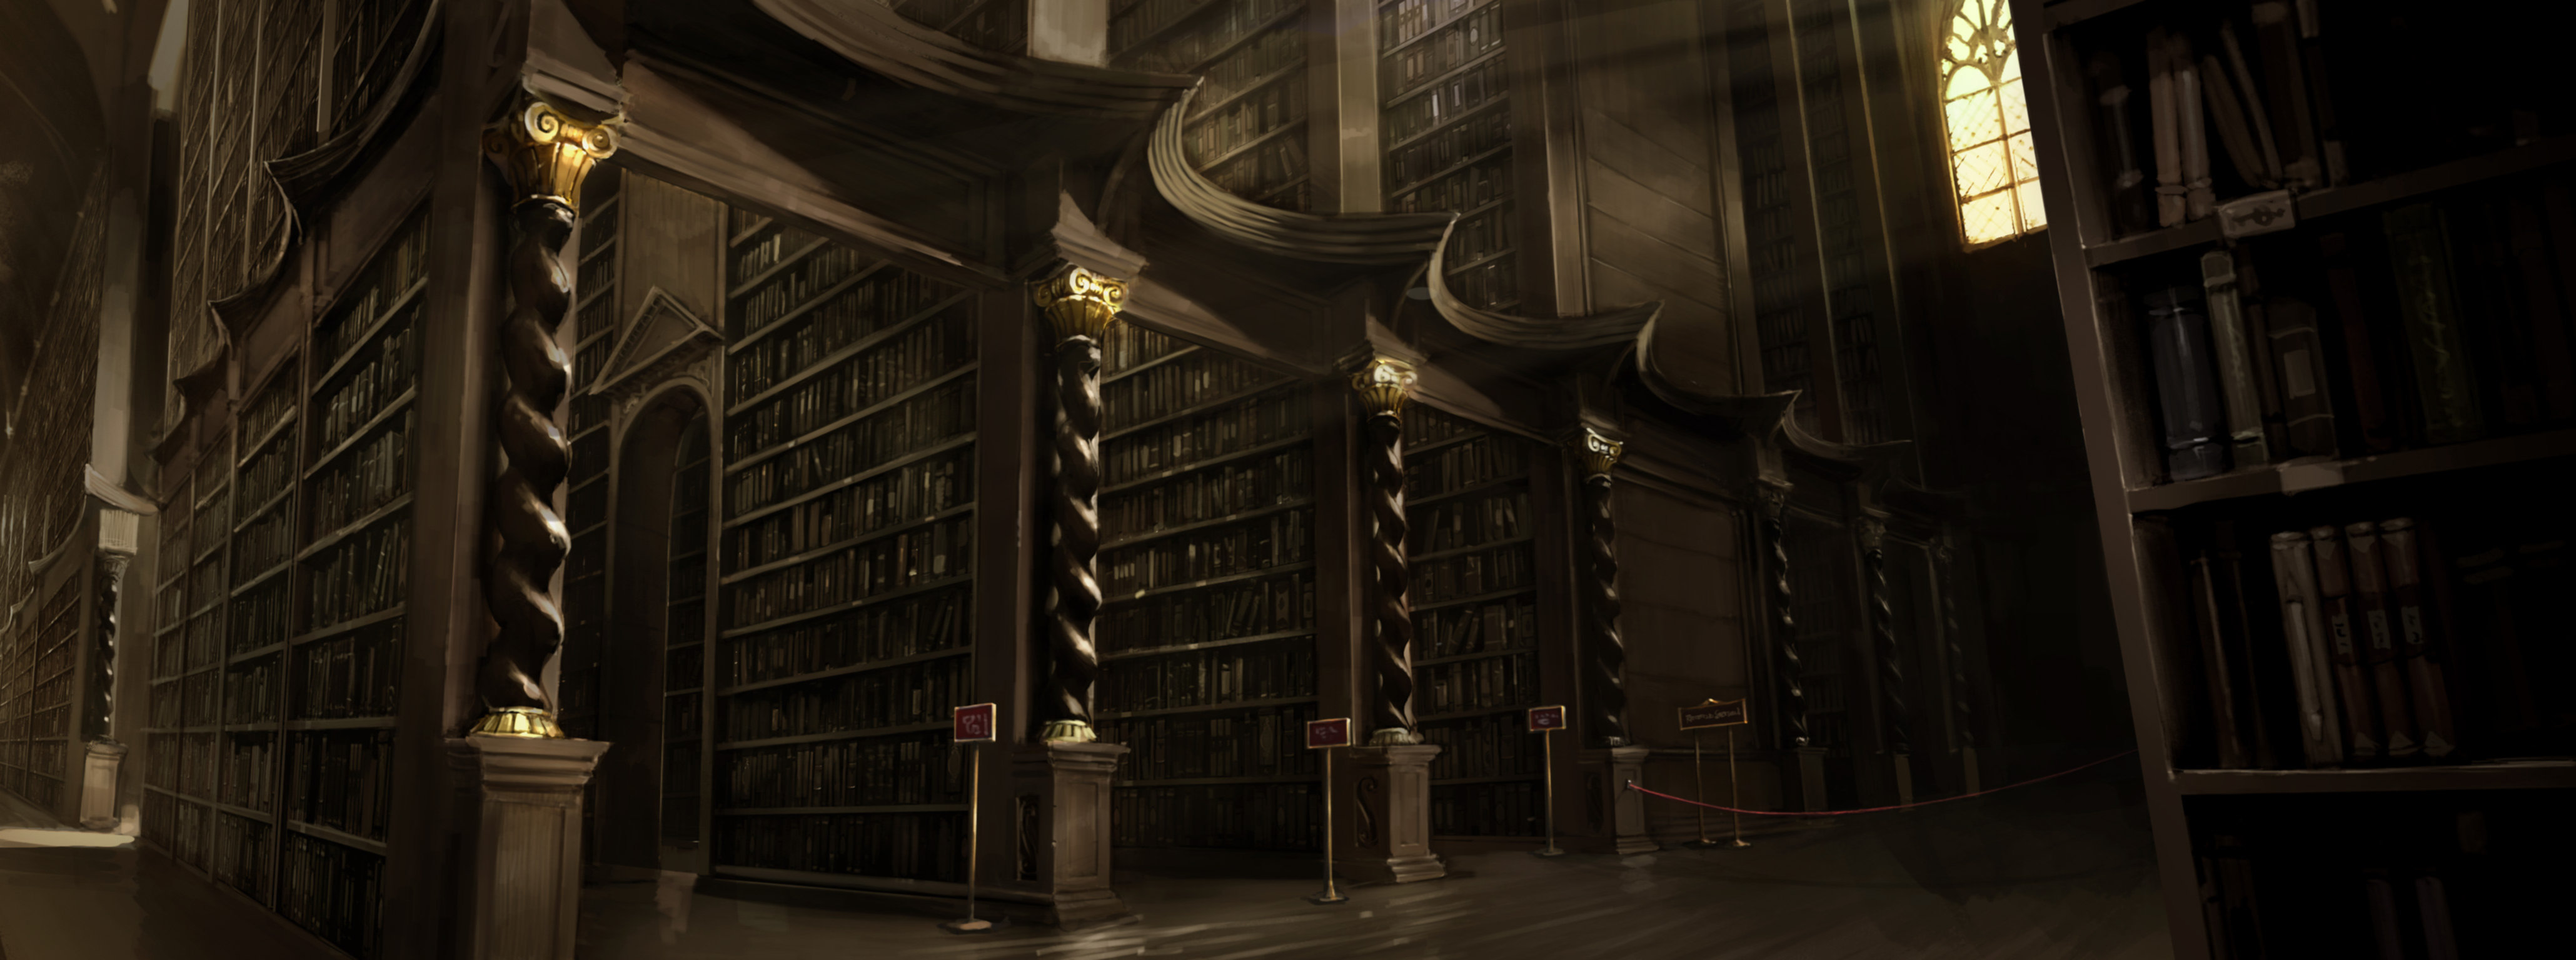 Harry Rona and Hermione search for Nicholas Flamel's name in the libary